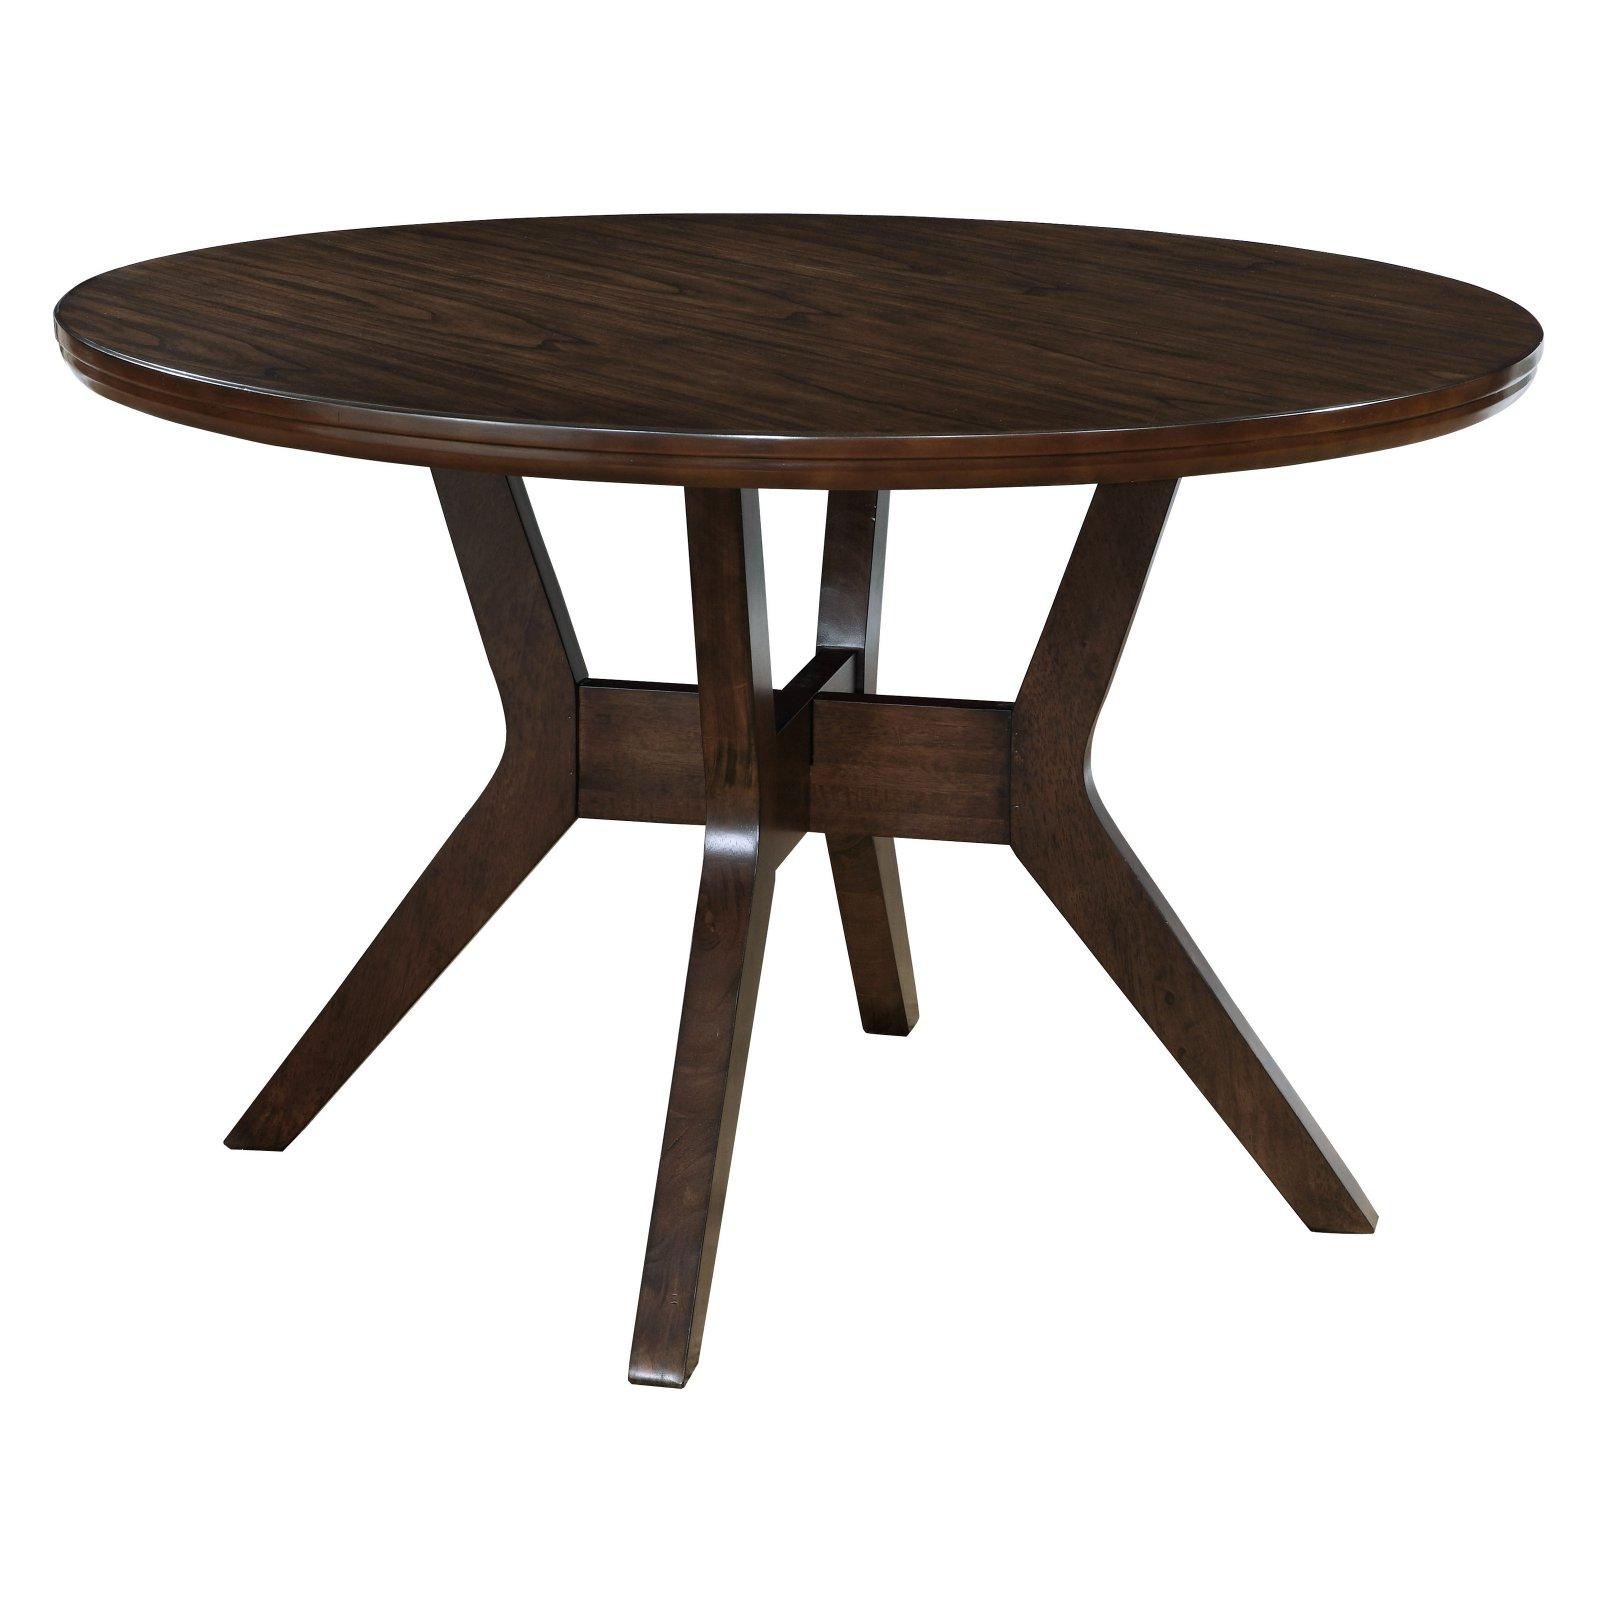 Furniture of America Wellis Mid-Century Modern Round Dining Table